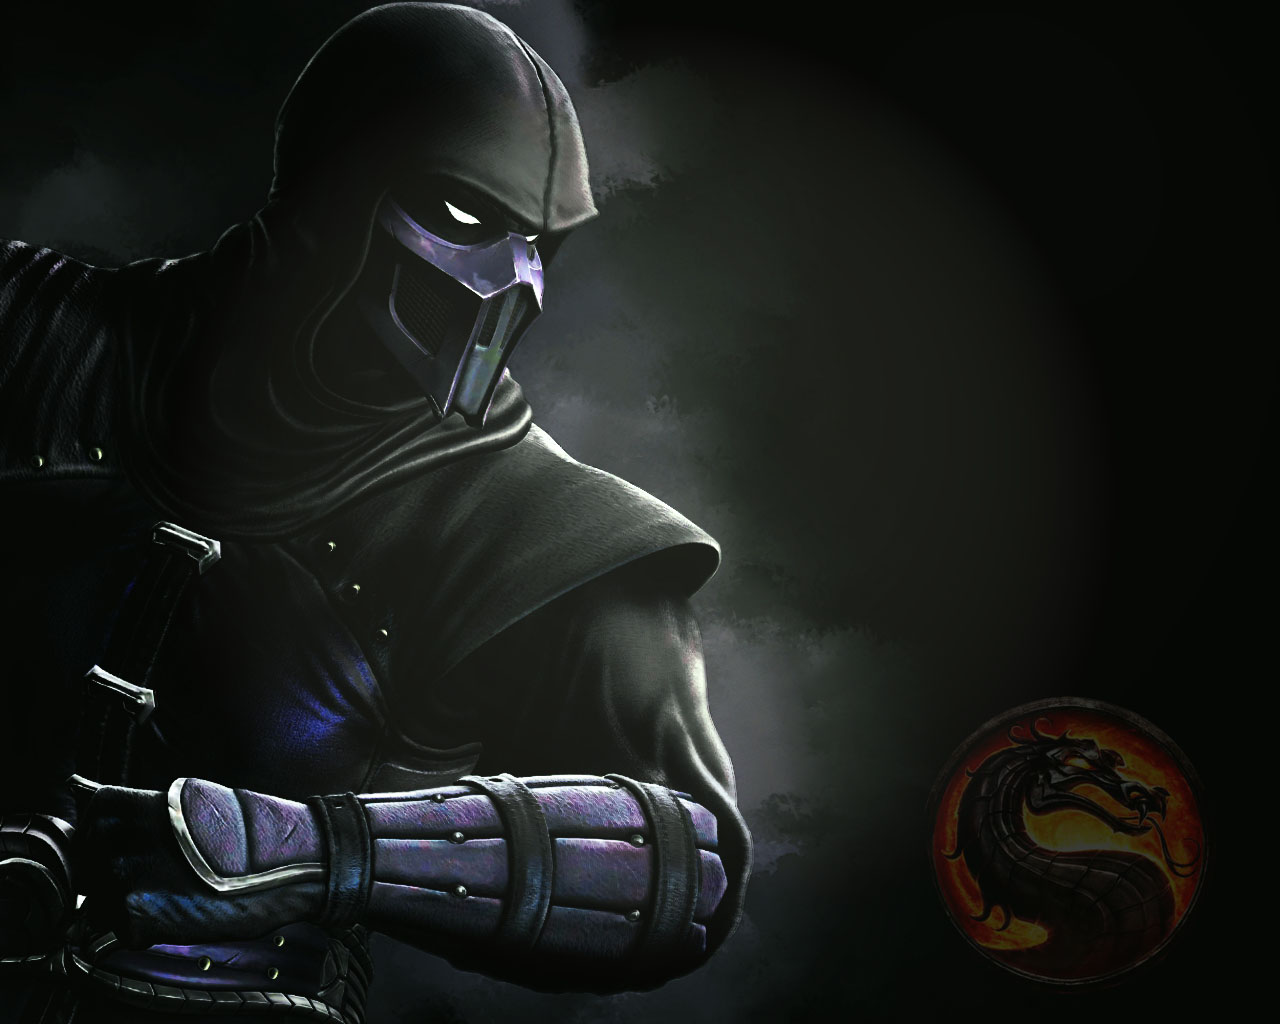 noob-saibot-Noob-Saibot-by-Karkan-on-deviantART-wallpaper-wp428014-1